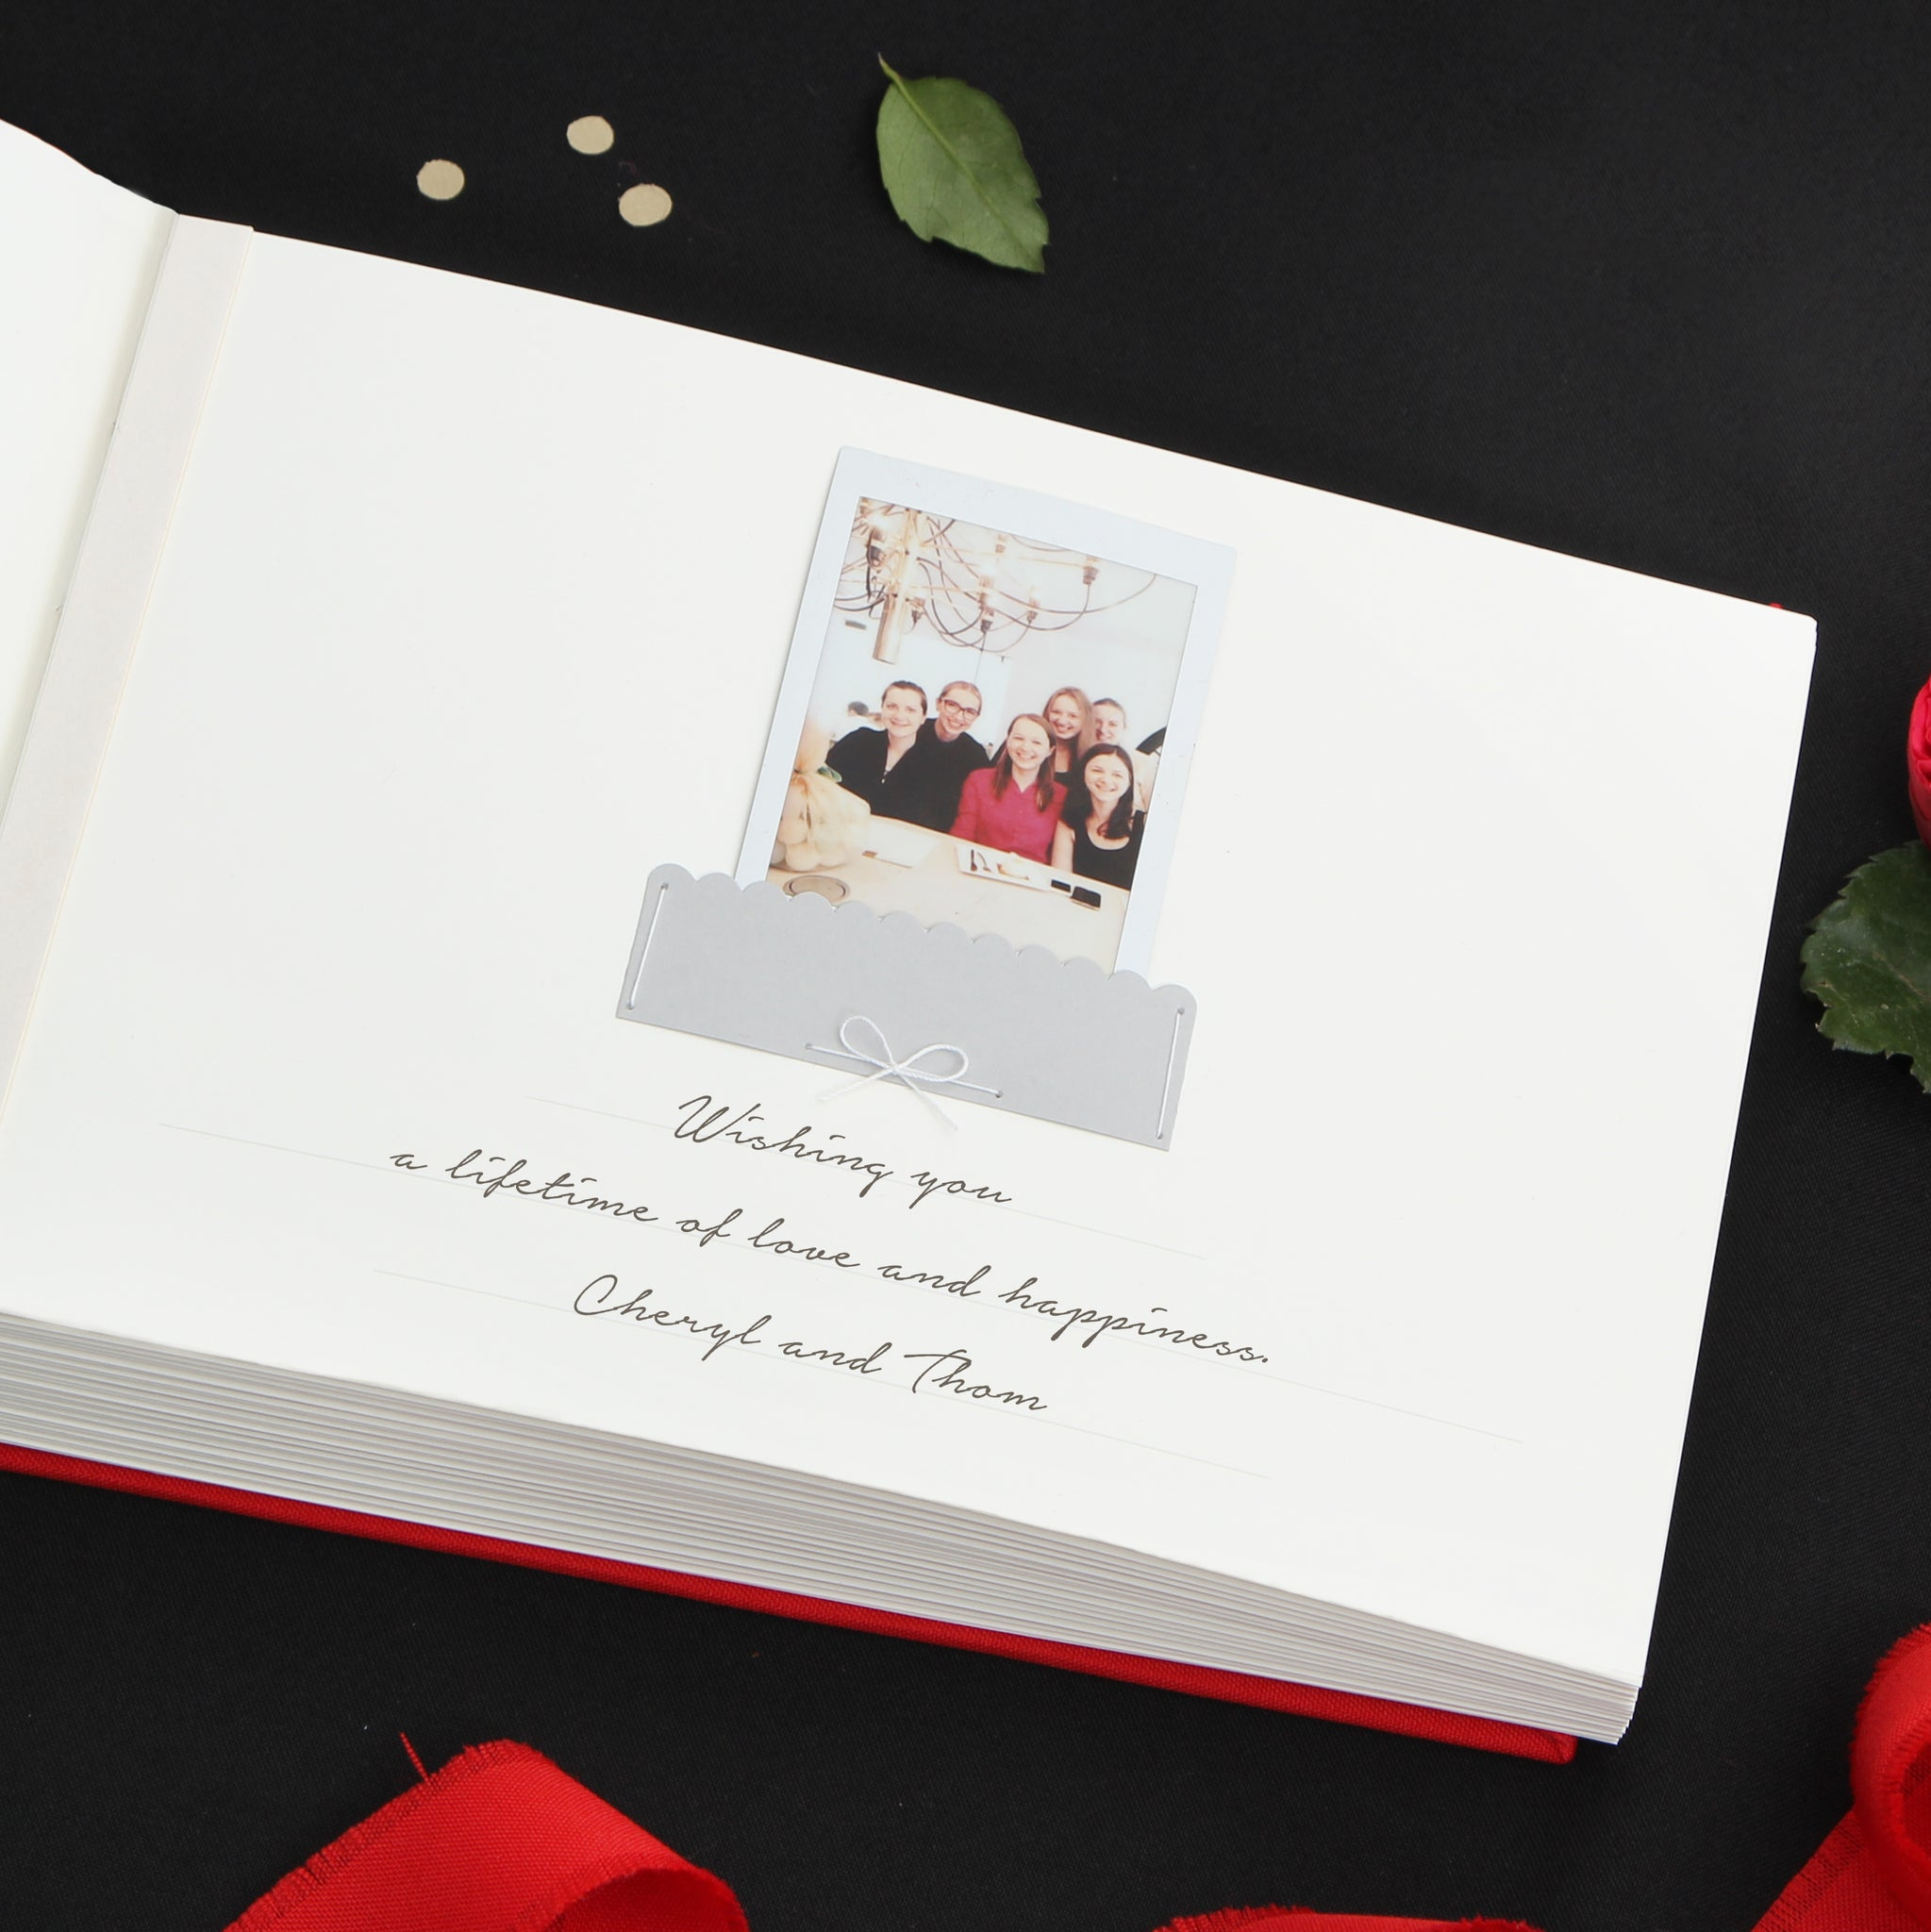 Red with Black Embossed Lettering, Instax picture album - by Liumy - Liumy